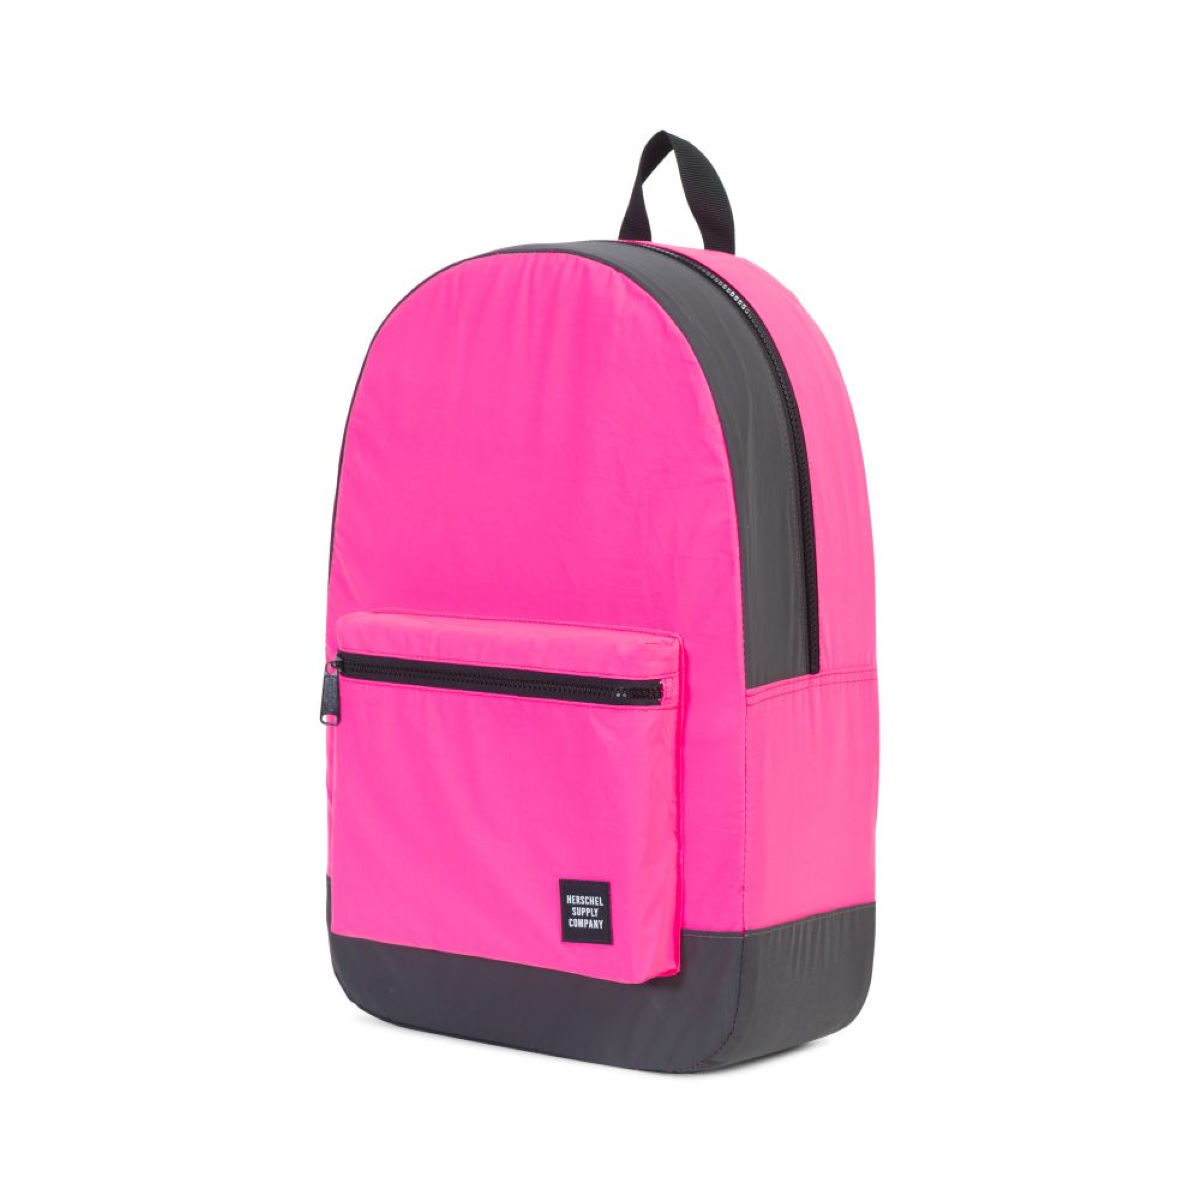 Image of Sac à dos Herschel (repliable) - Taille unique Neon Pink Reflective